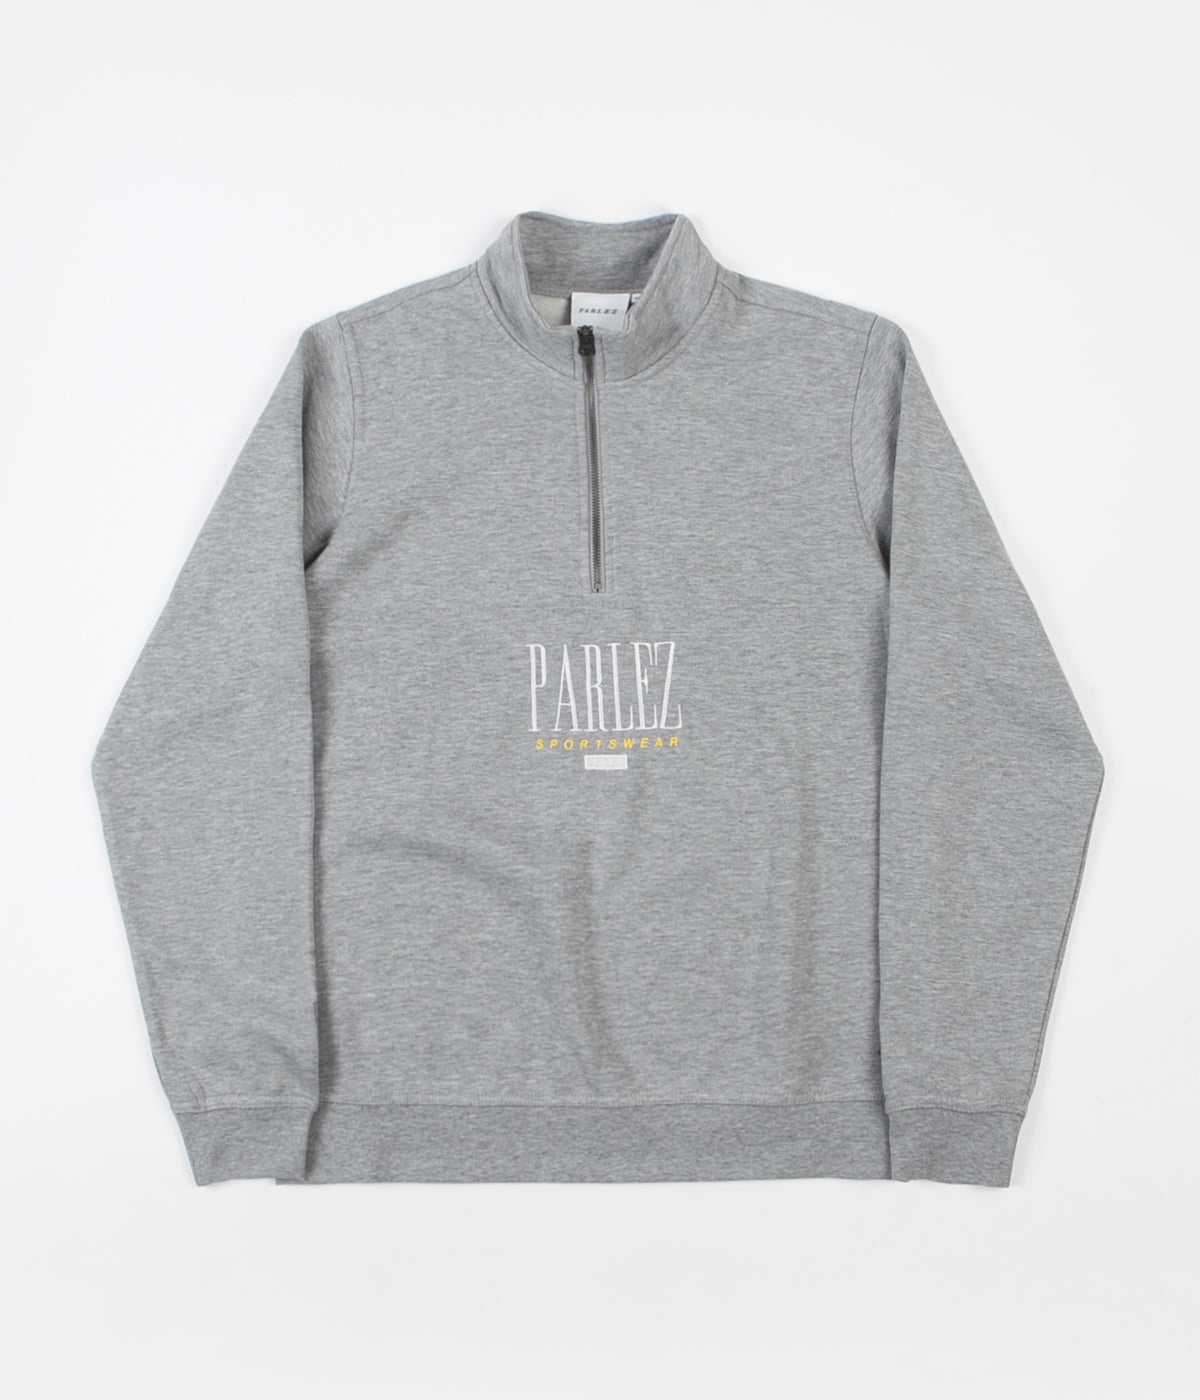 Parlez Spits 1/4 Zip Sweatshirt - Heather